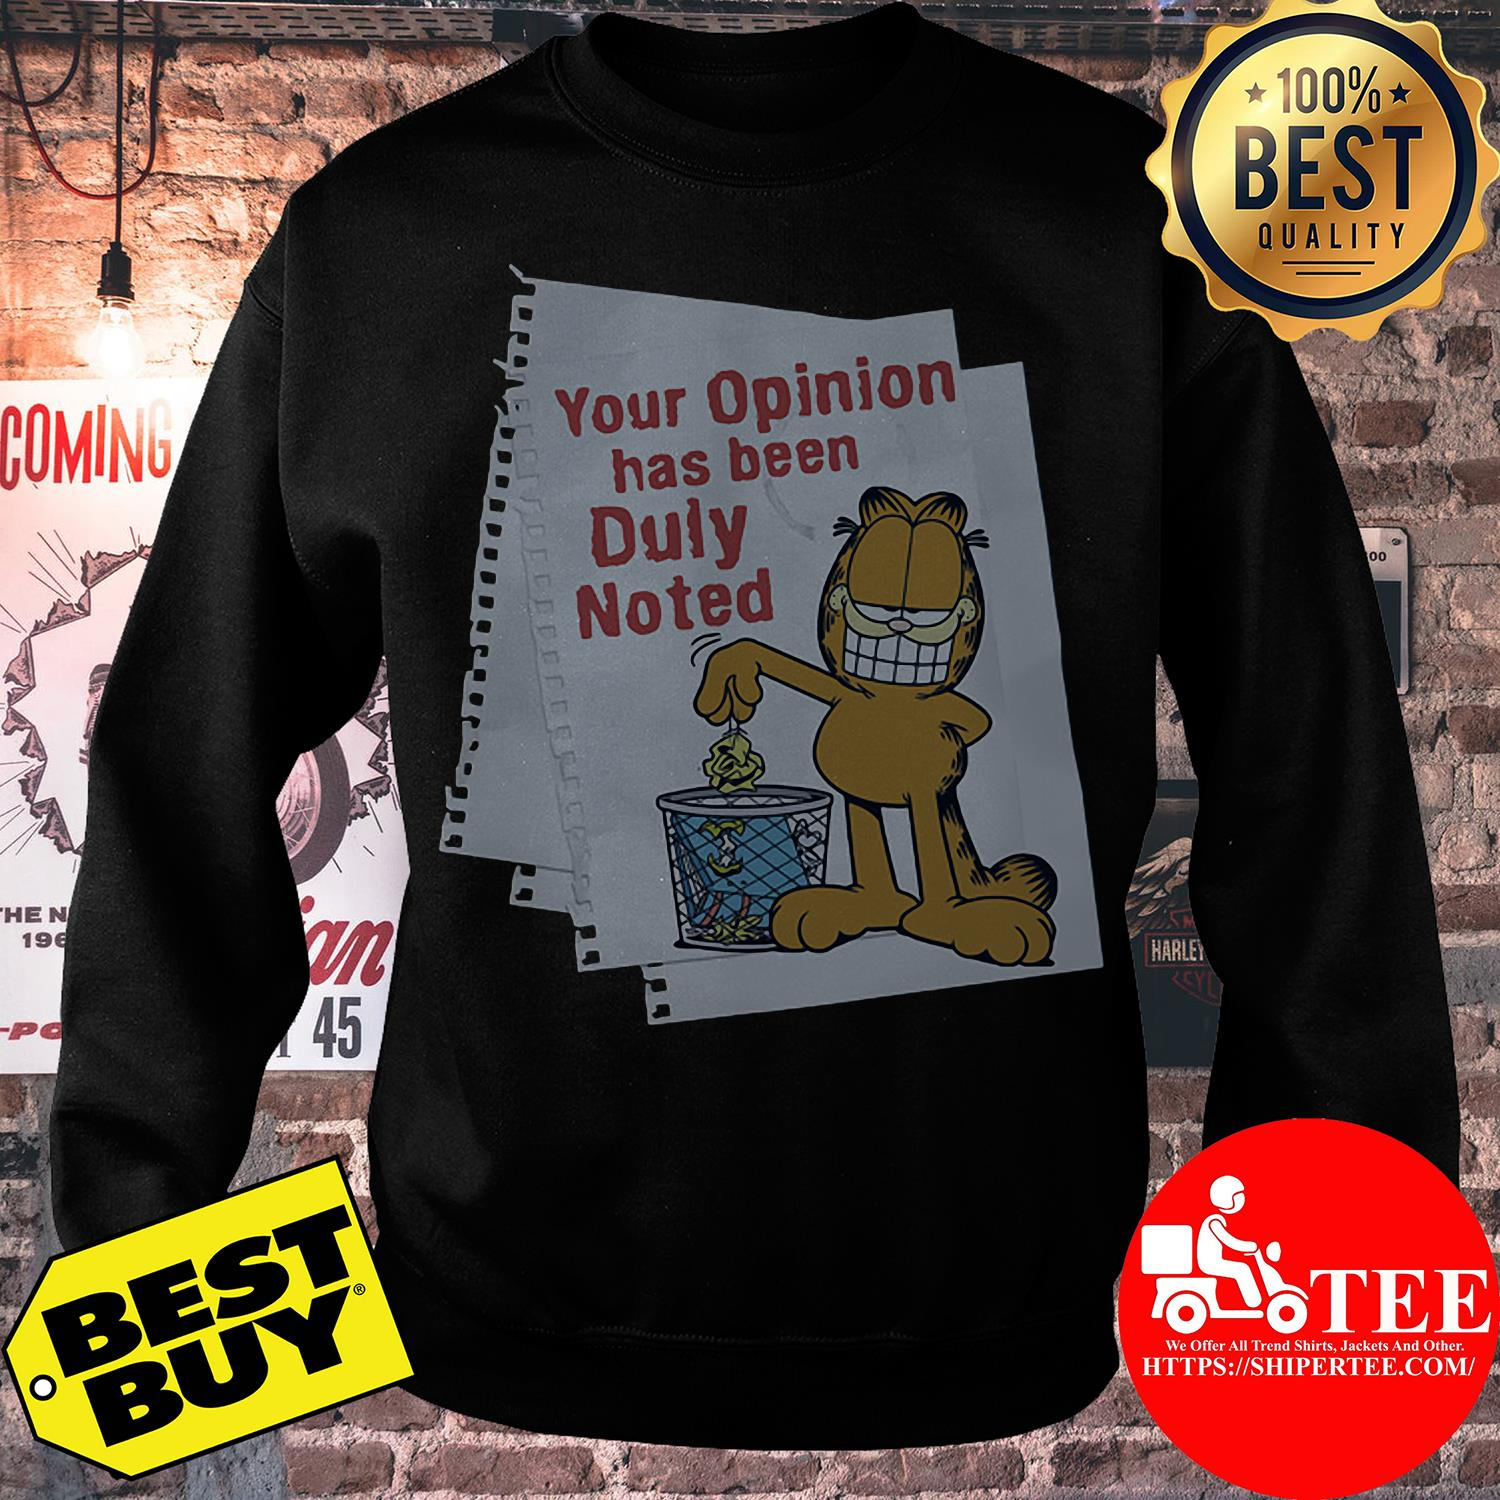 Your opinion has been duly noted Garfield sweatshirt